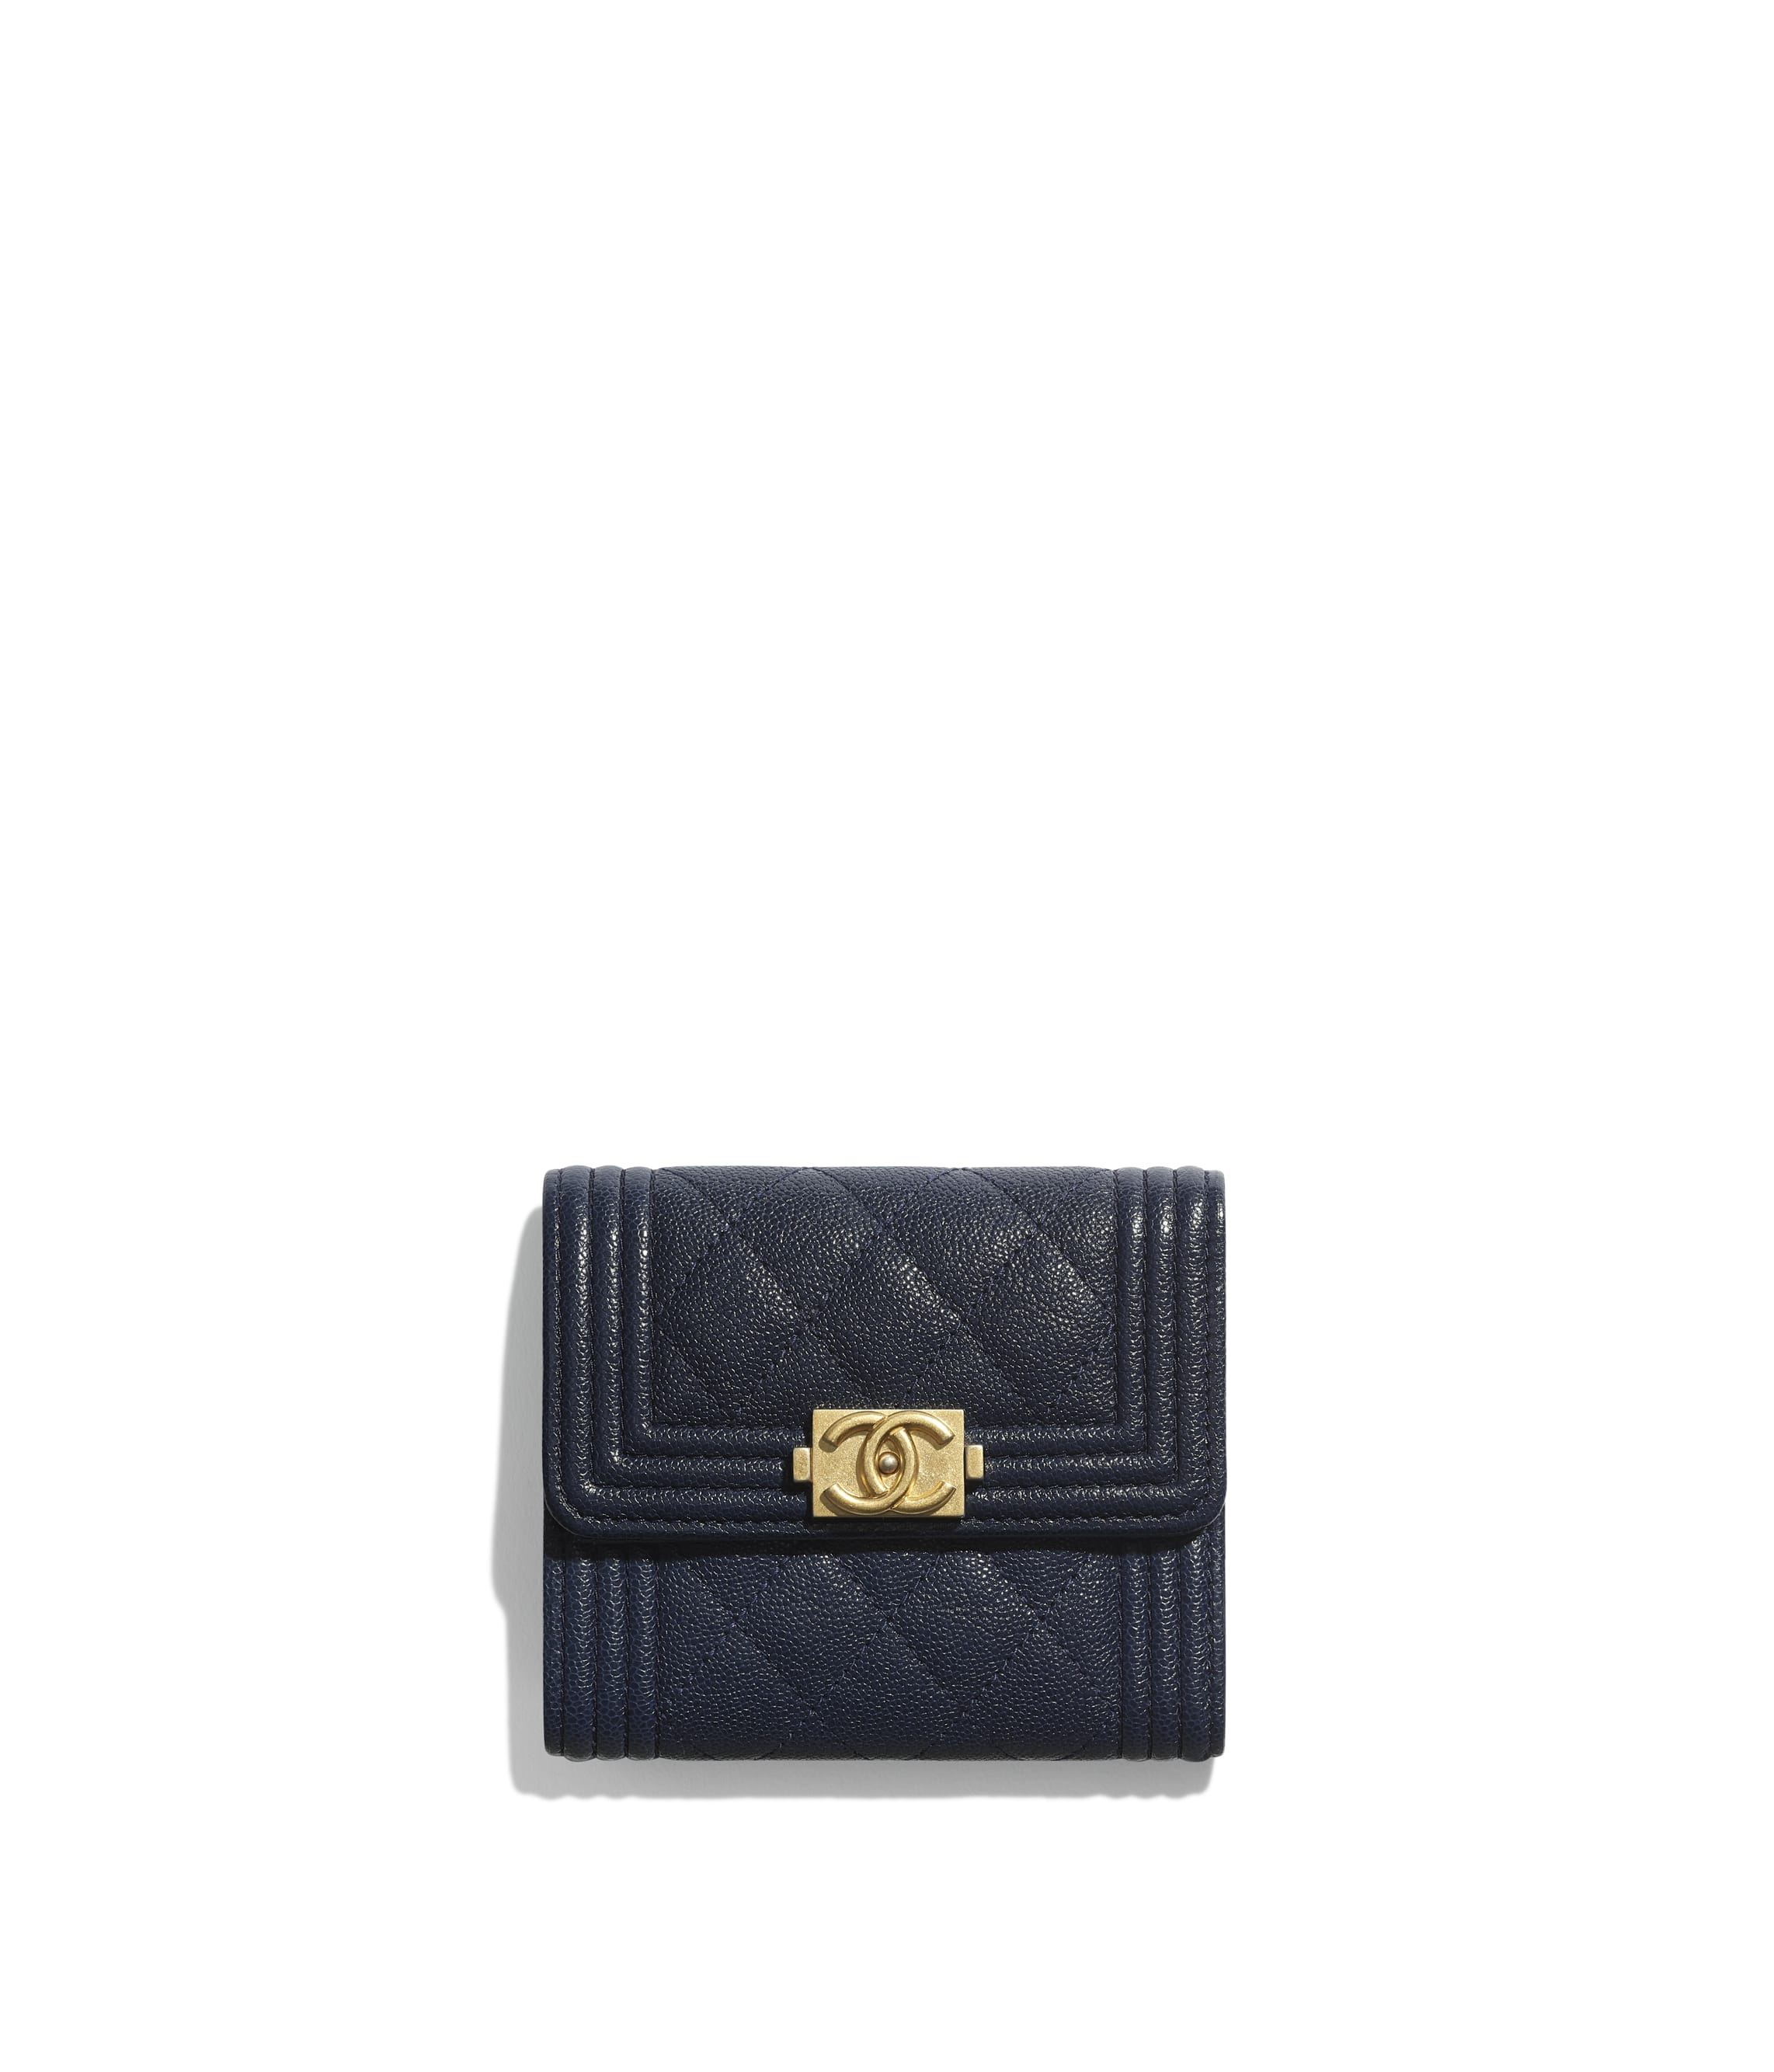 f454c9033c35 BOY CHANEL Small Flap Wallet, grained calfskin & gold-tone metal ...